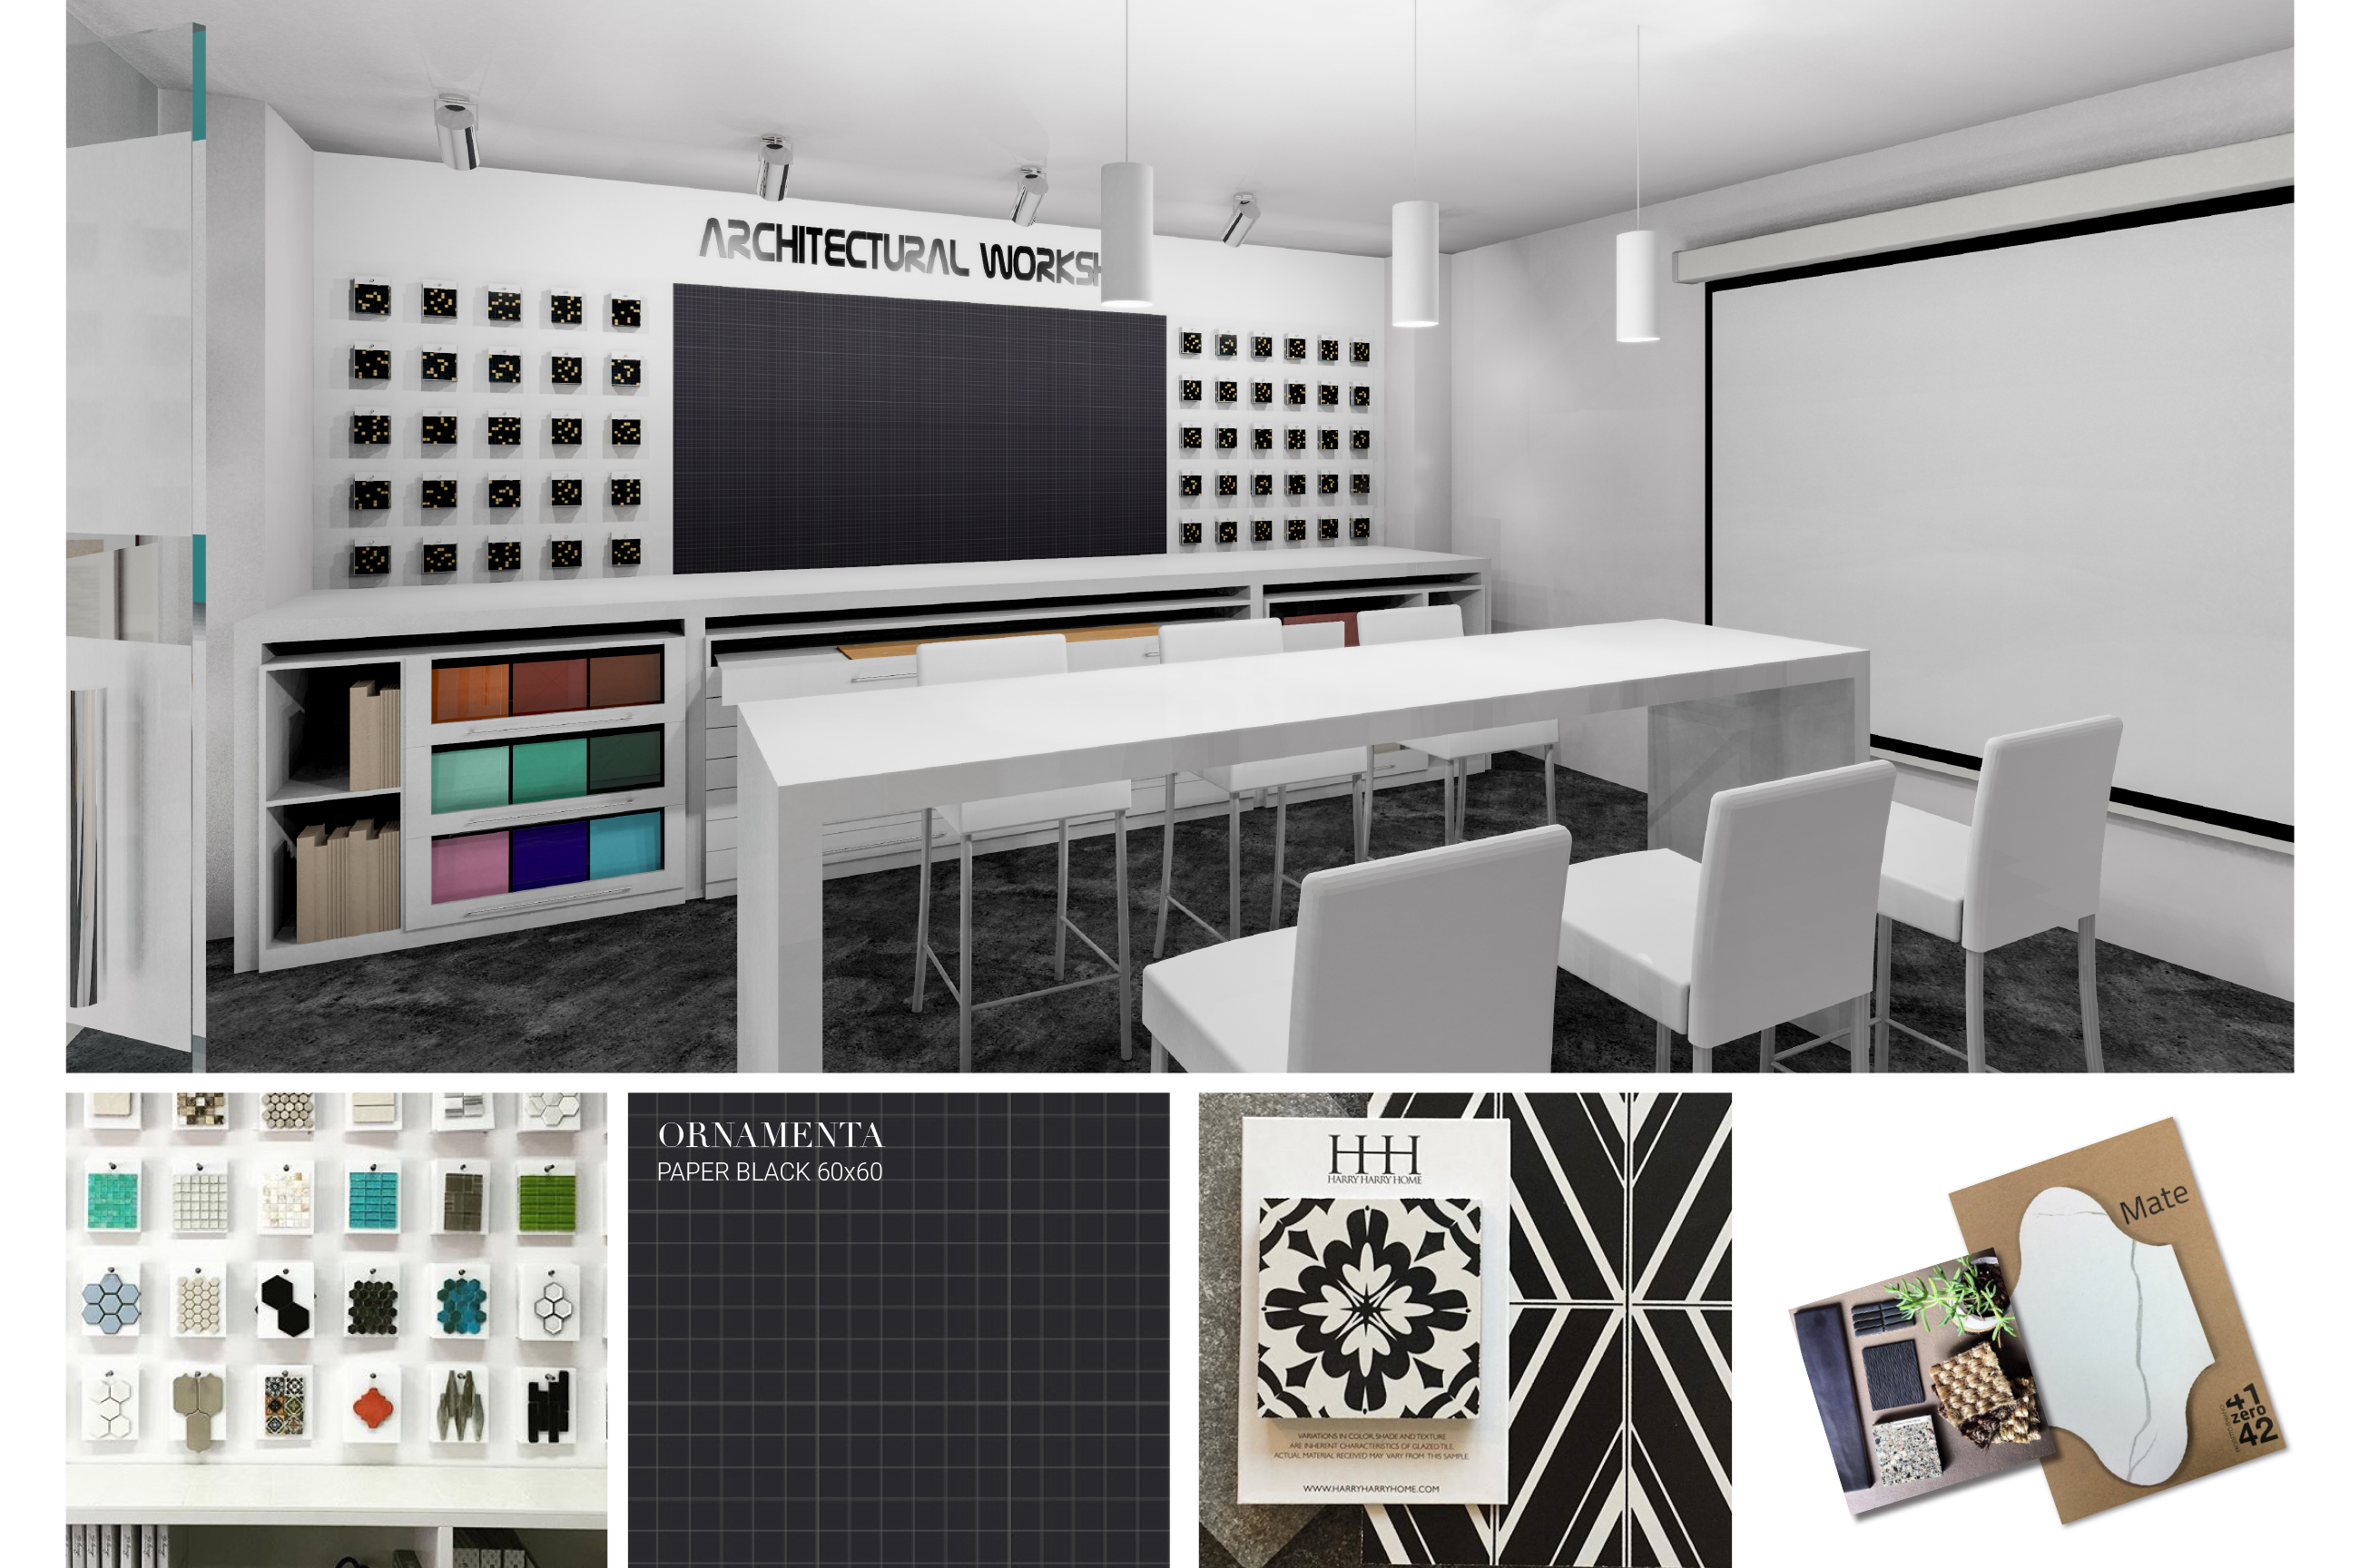 Tile Mountain showroom interior design - workspace for architects and interior designers